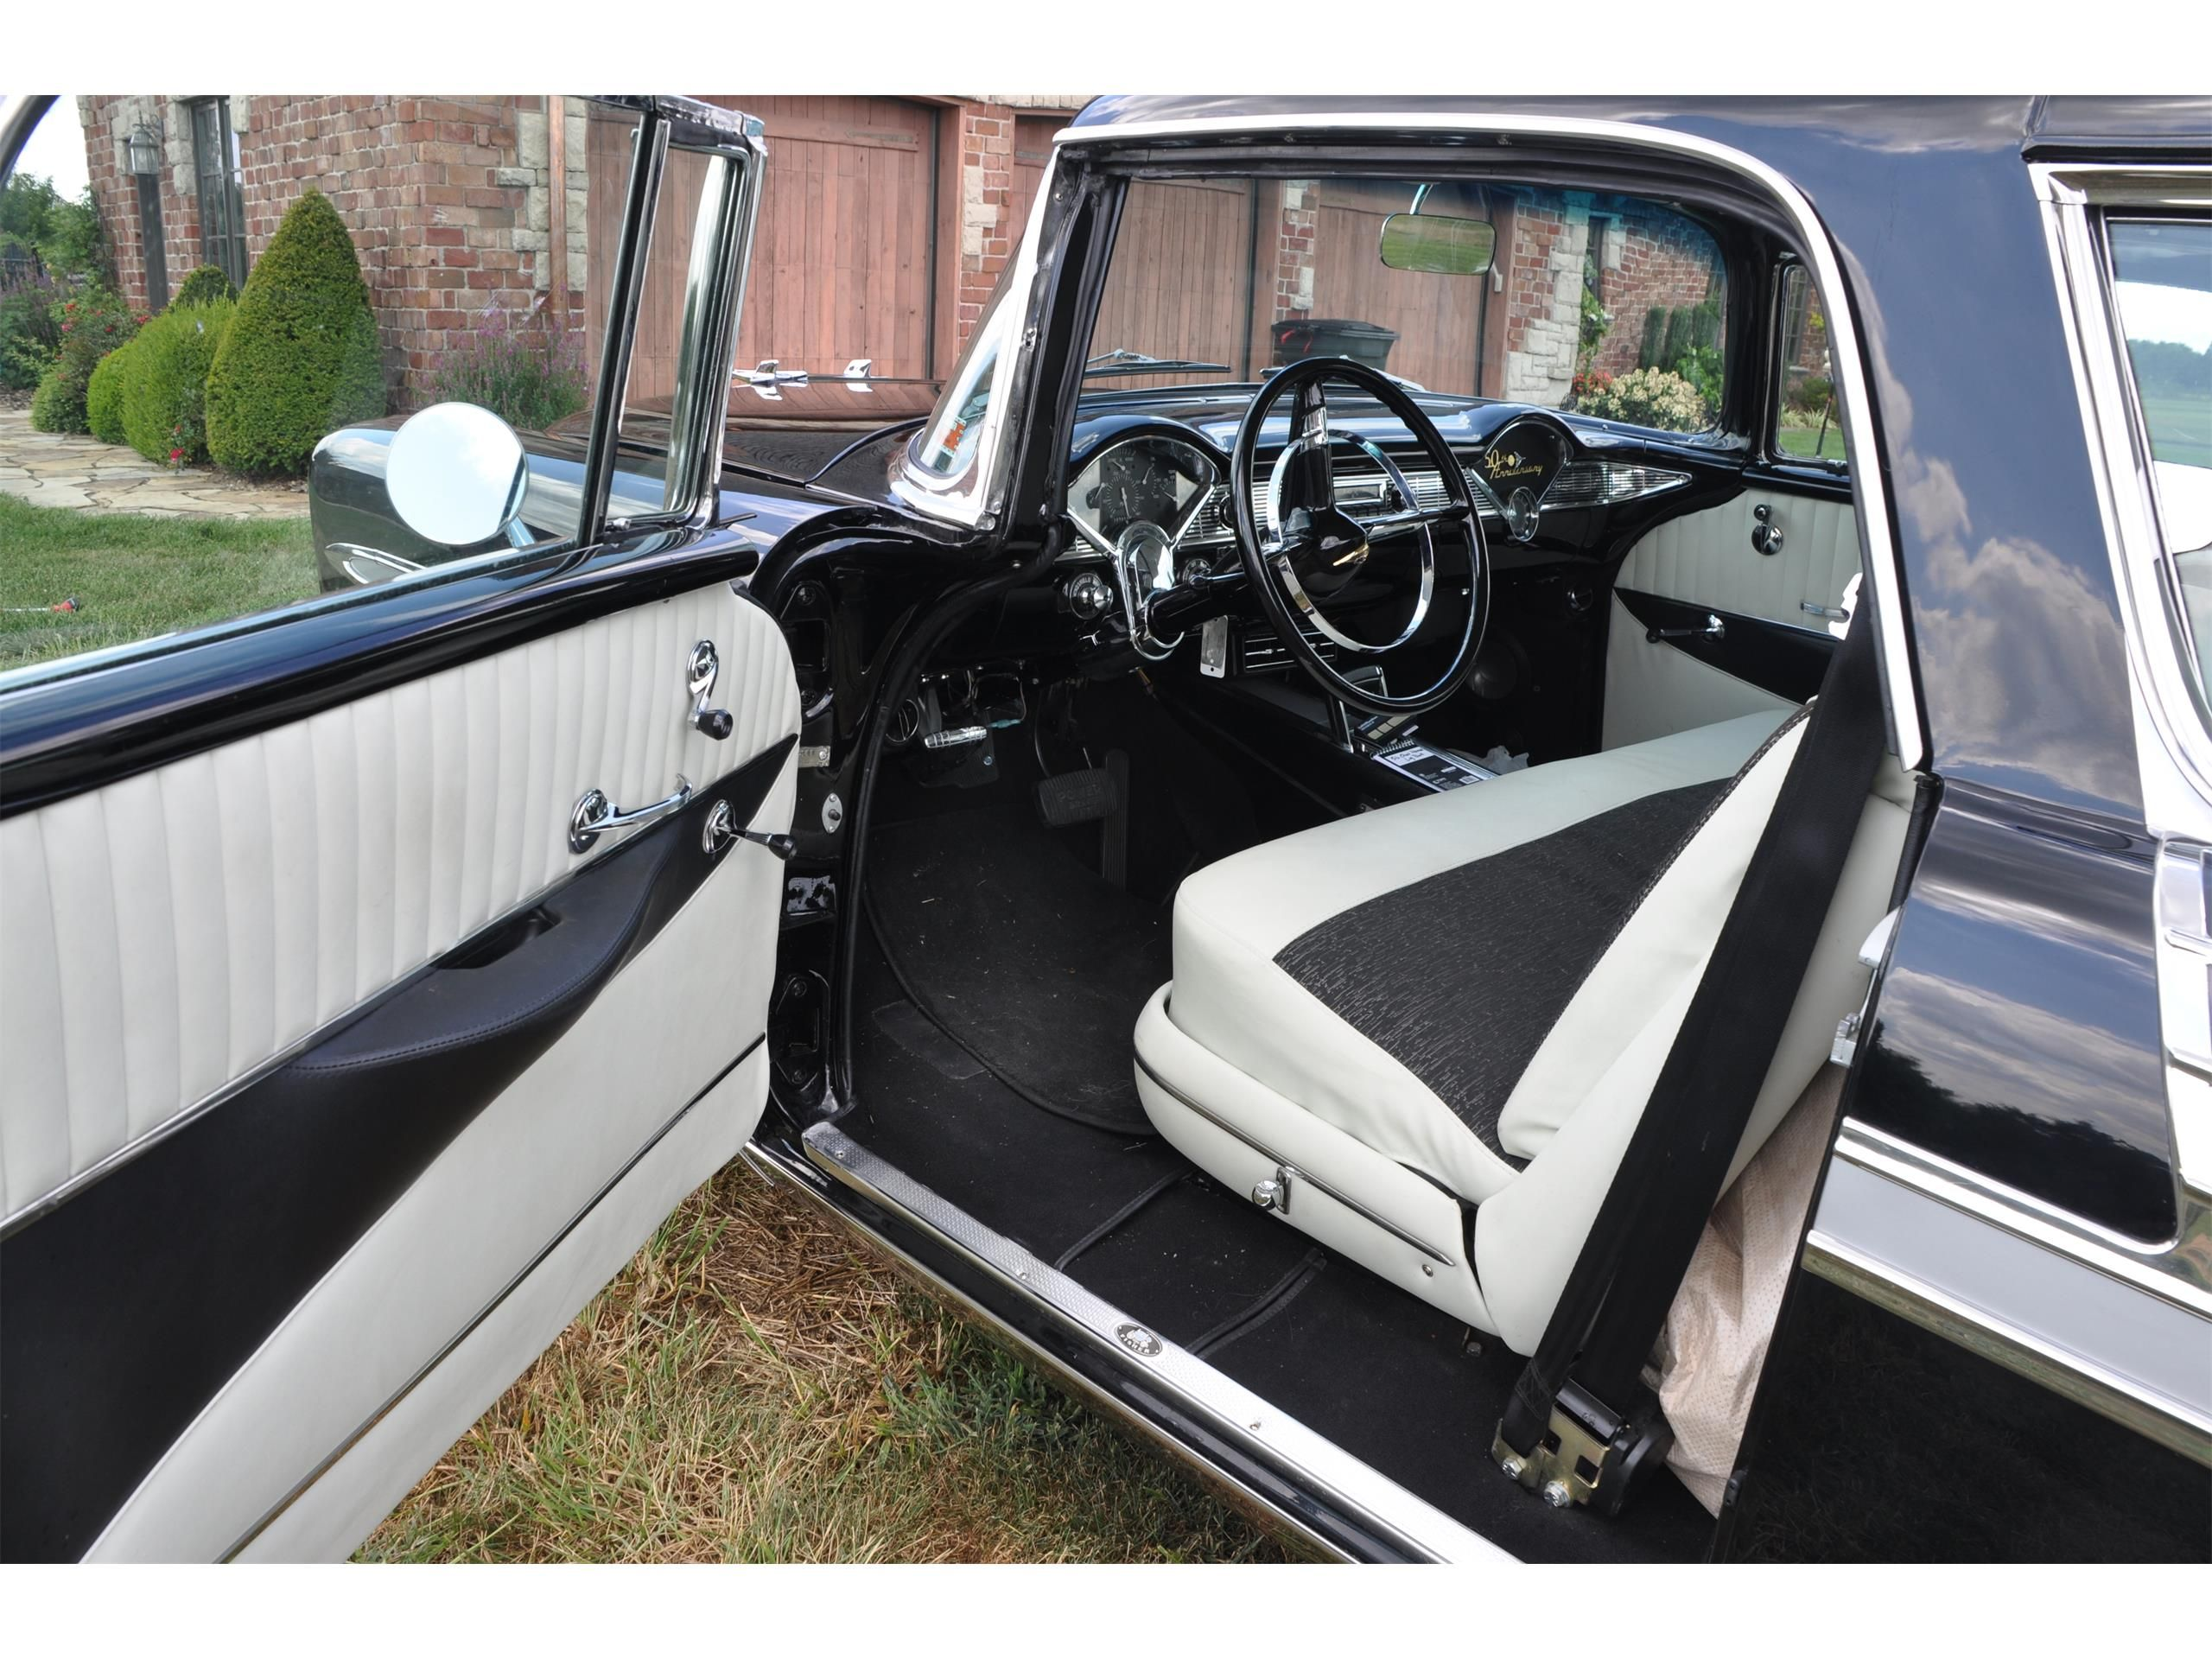 1956 Chevrolet Nomad For Sale Listing Id Cc 1142465 Classiccars Com Driveyourdream Chevy Classicchevy Chevrolet Nomad Springfield Missouri